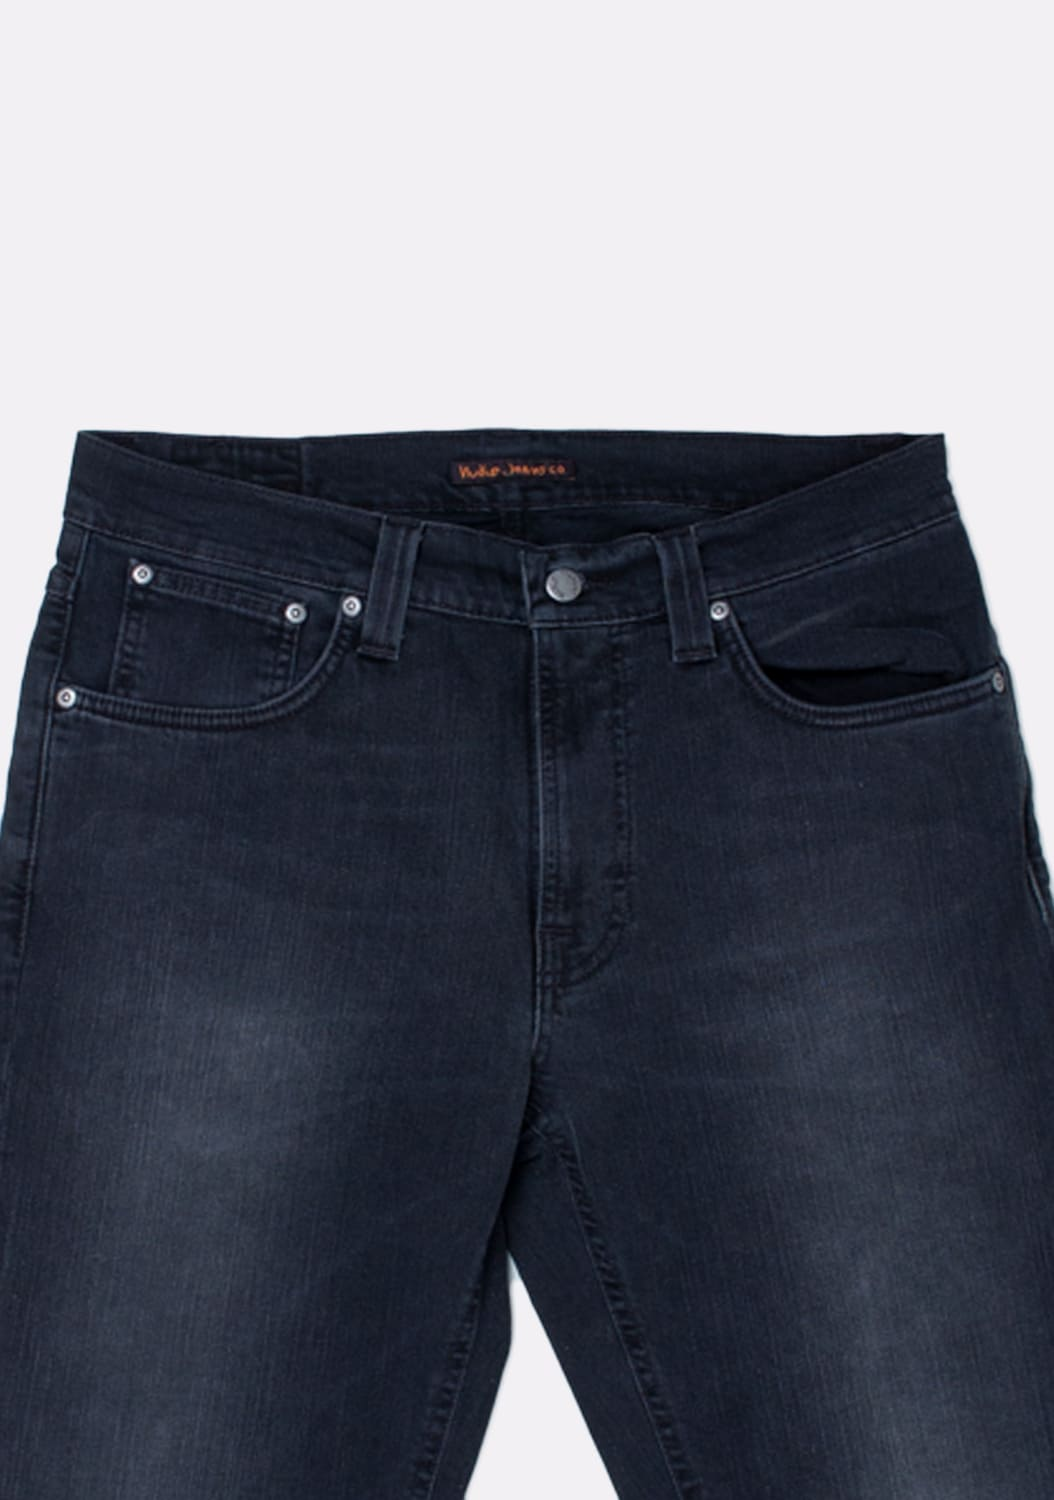 Nudie-Jeans-Lean-Dean-Black-Changes-34-34-juodi-dzinsai (3)